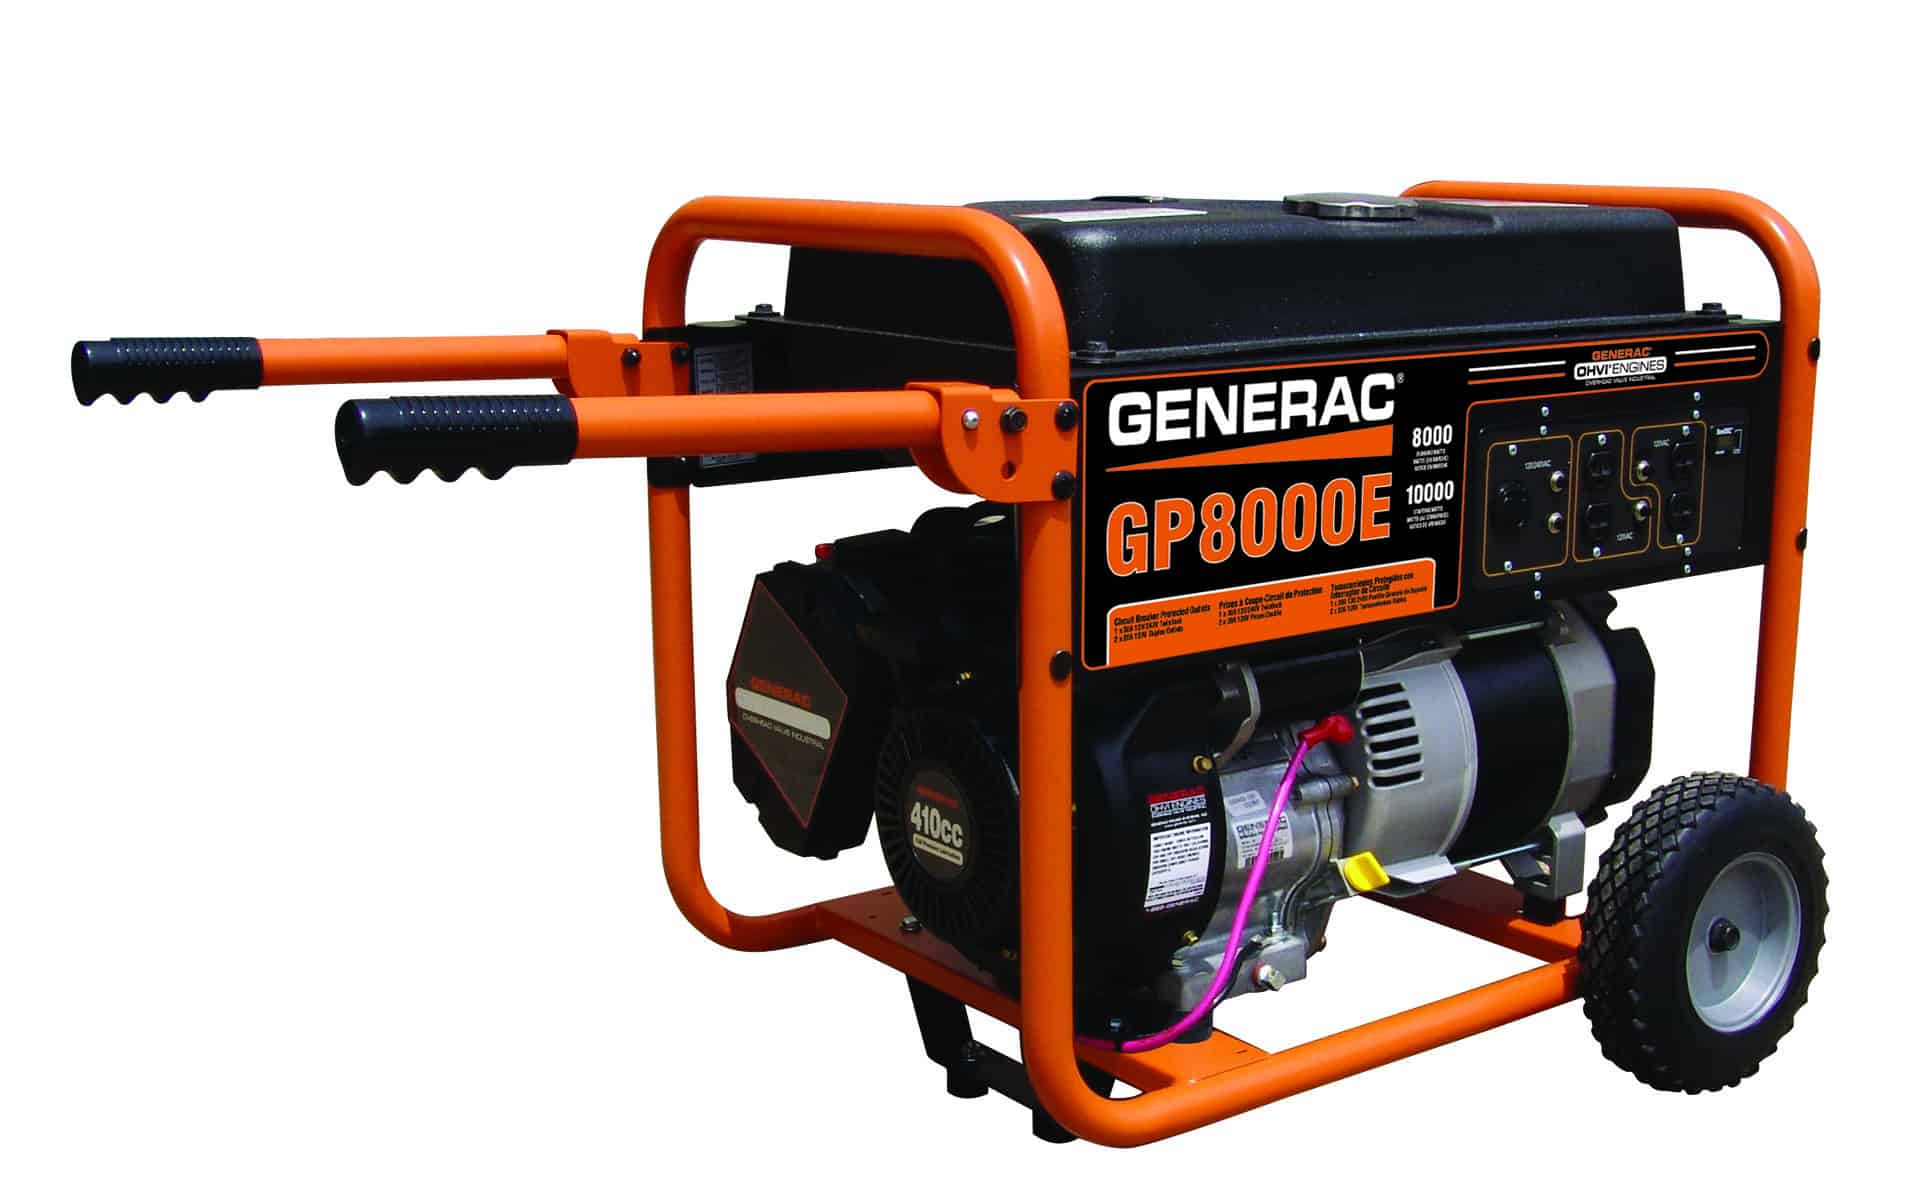 Basics of Home Generators for Emergency Backup Power